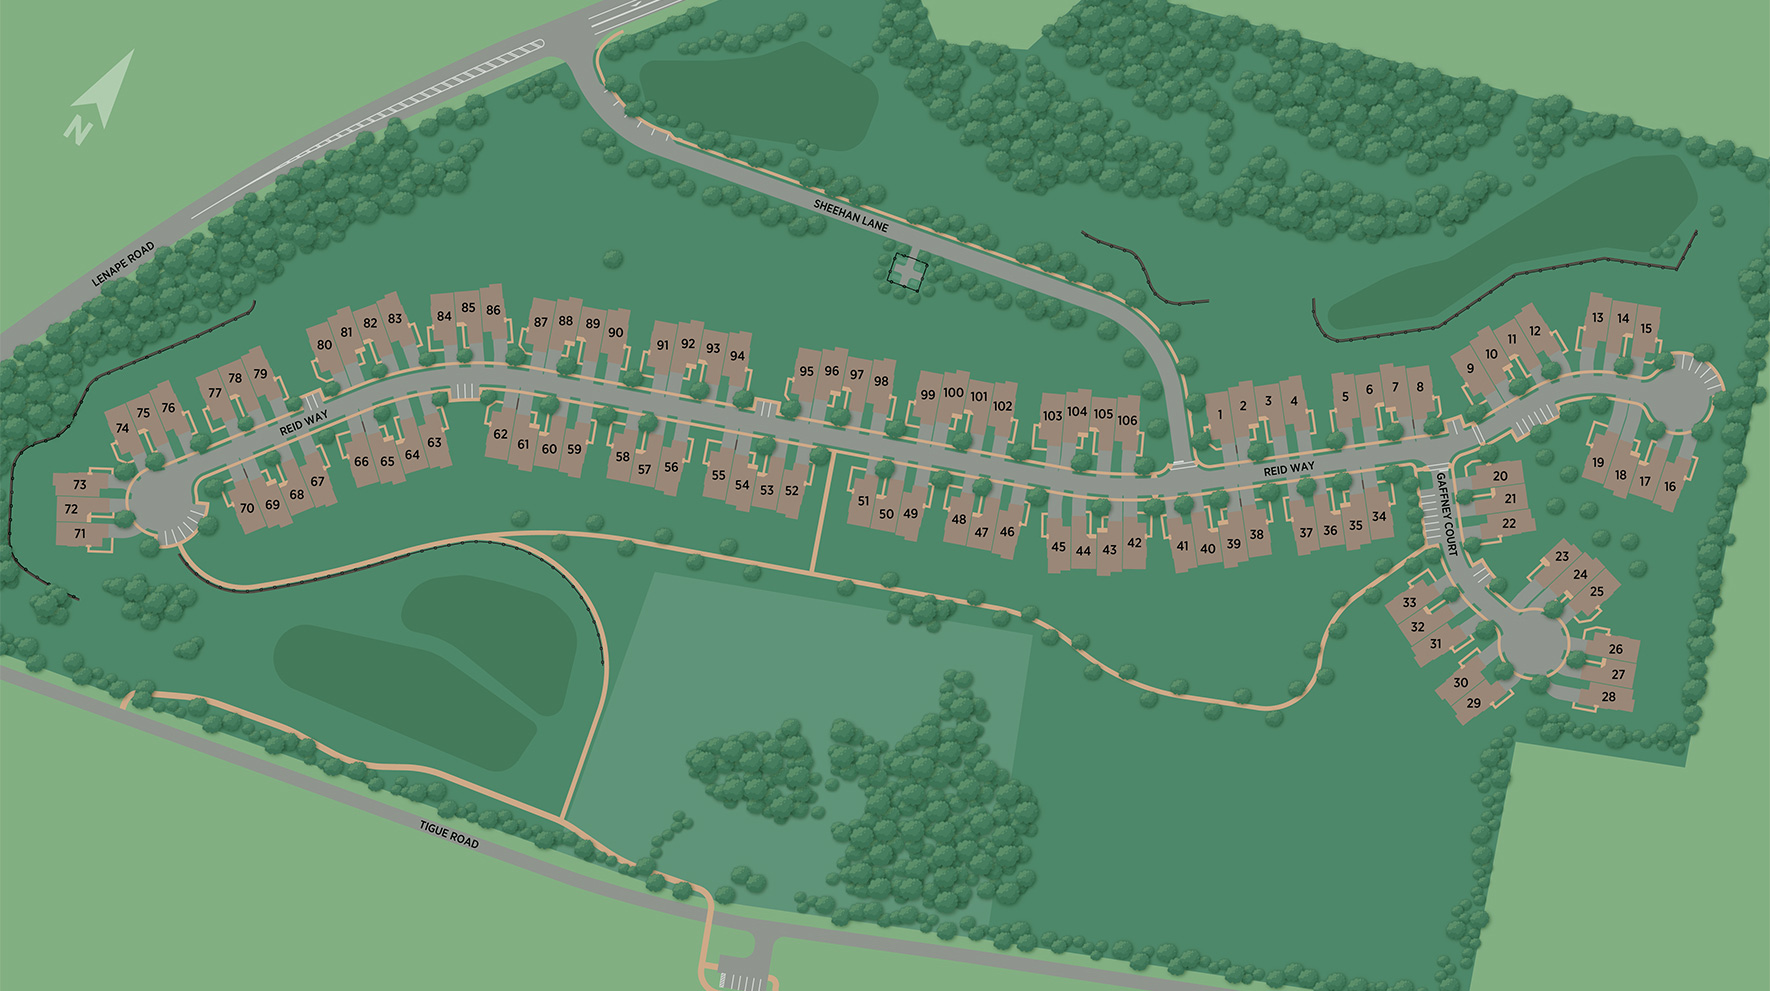 Darlington Ridge at West Chester Site Plan